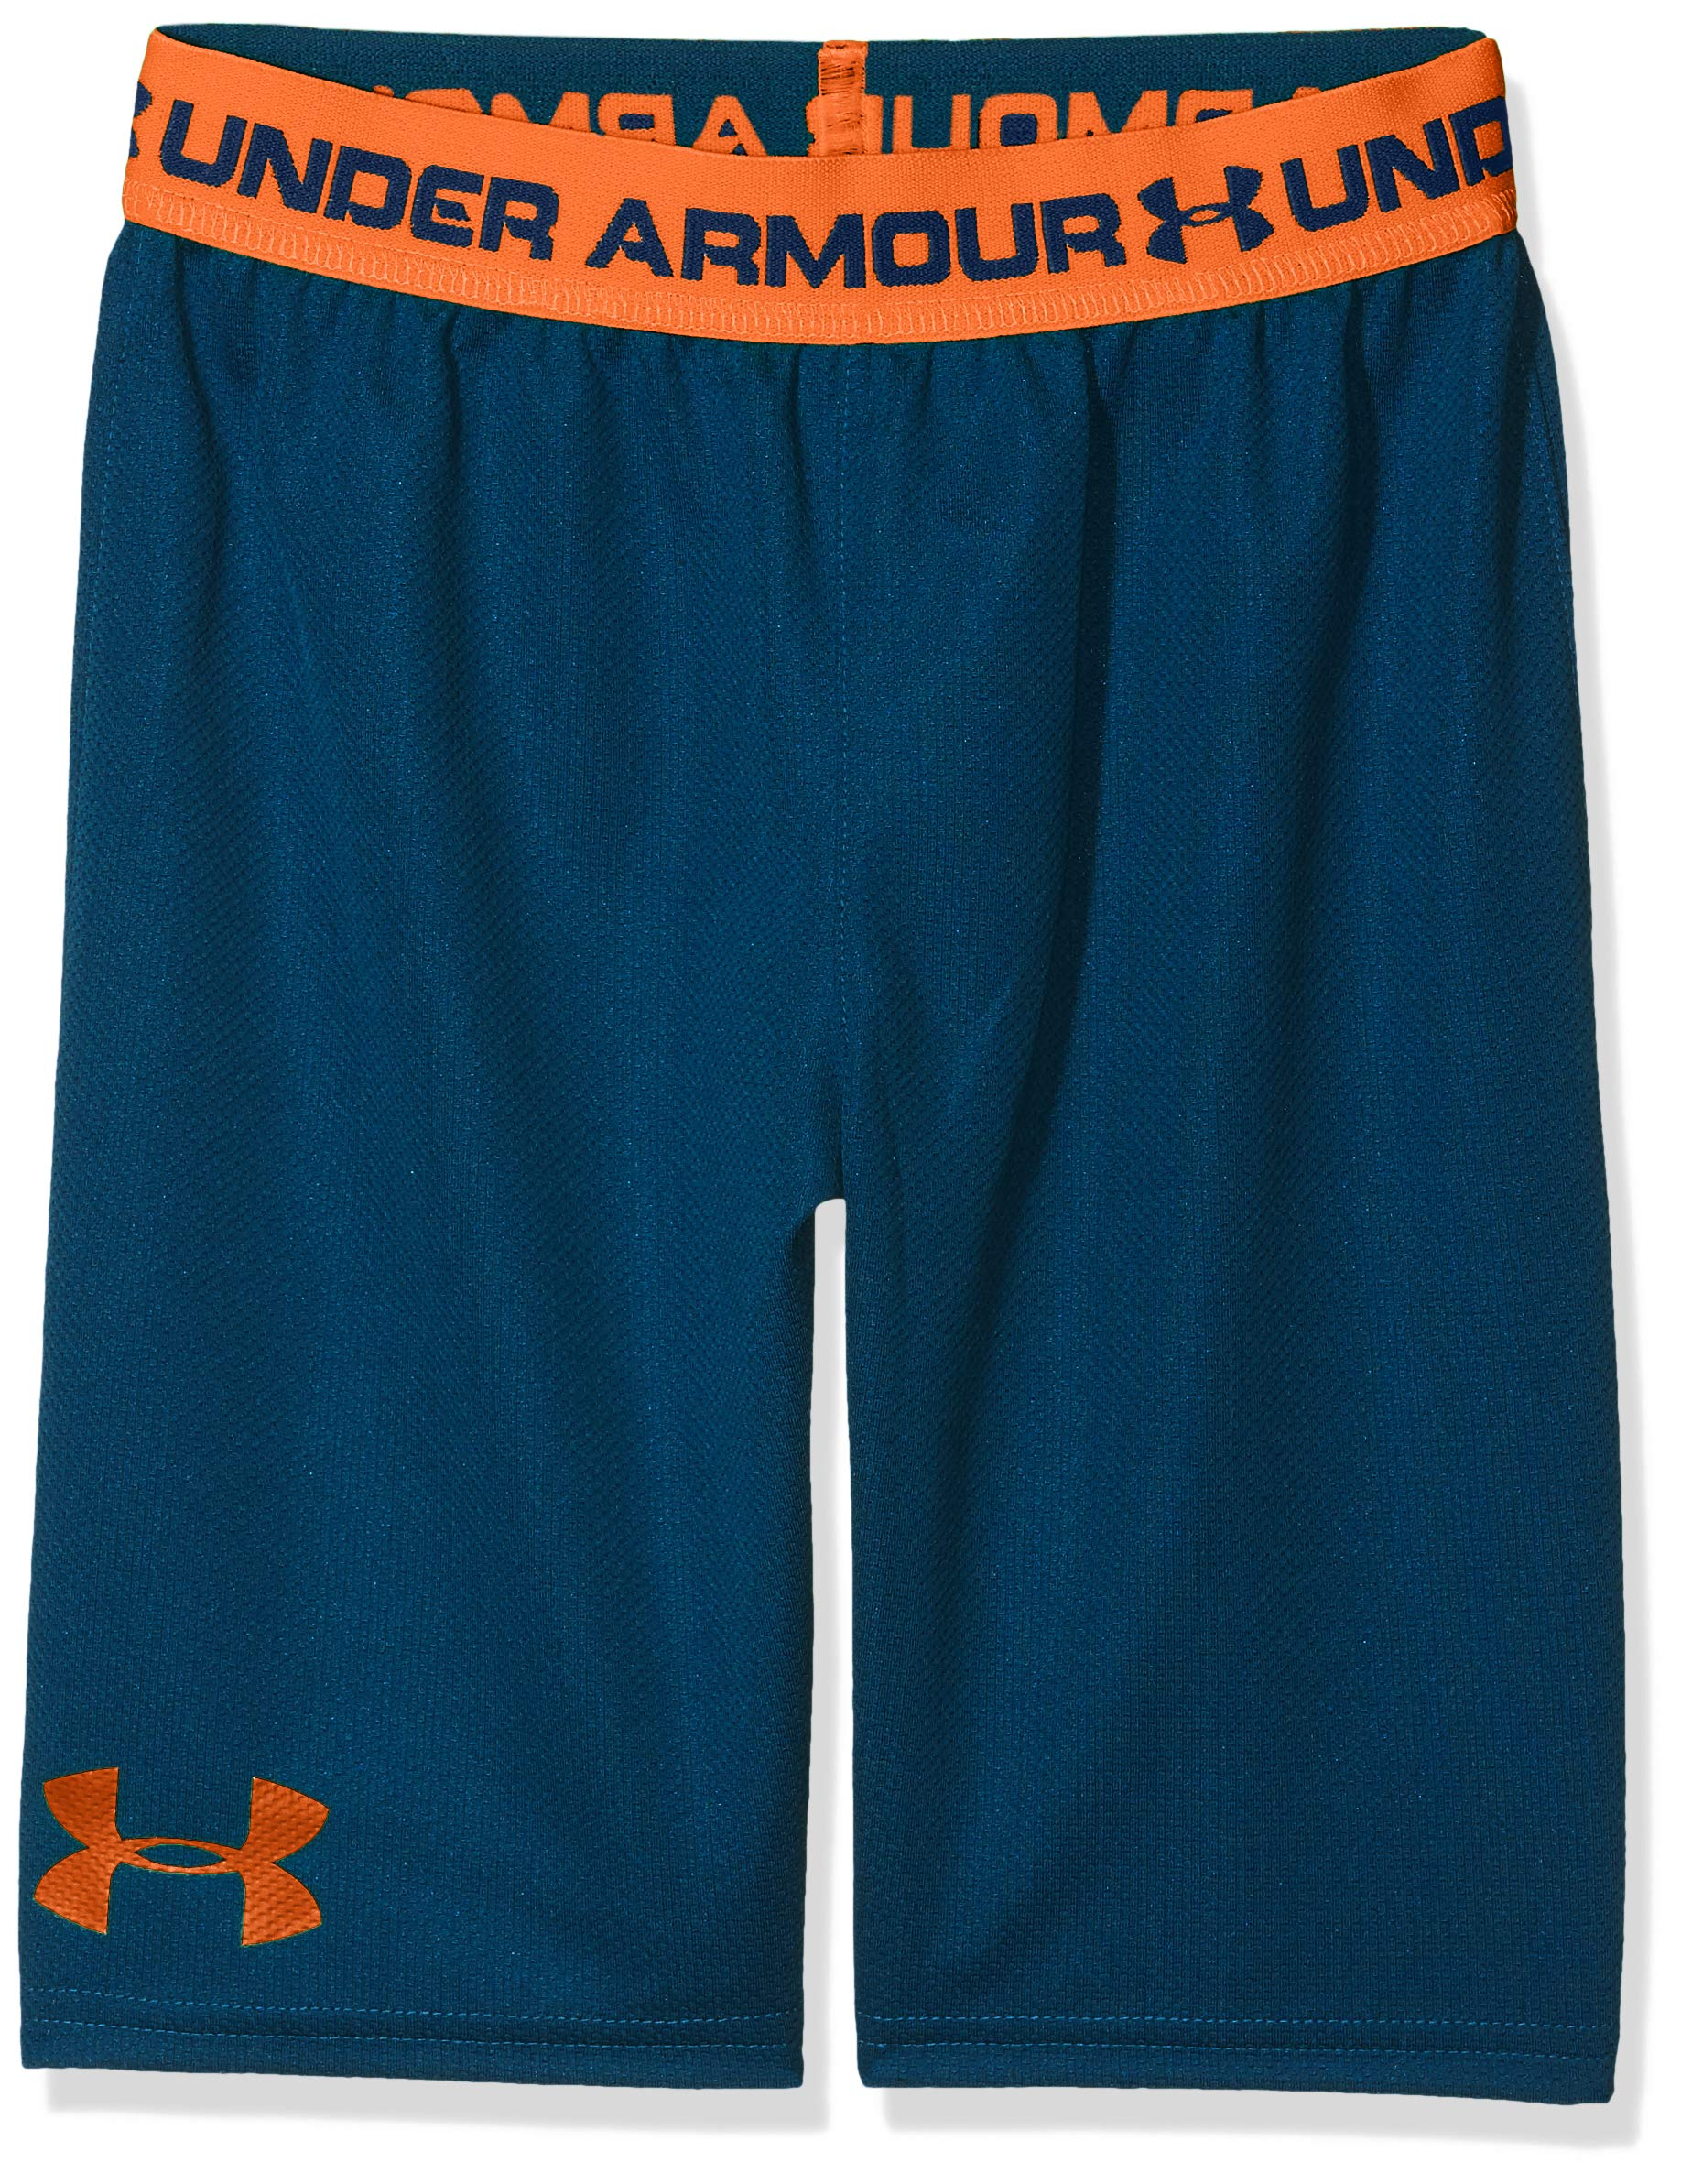 Underarmour Tech Prototype 2.0 Shorts Big Kids Style : 1309310-489 Size : XL by Under Armour